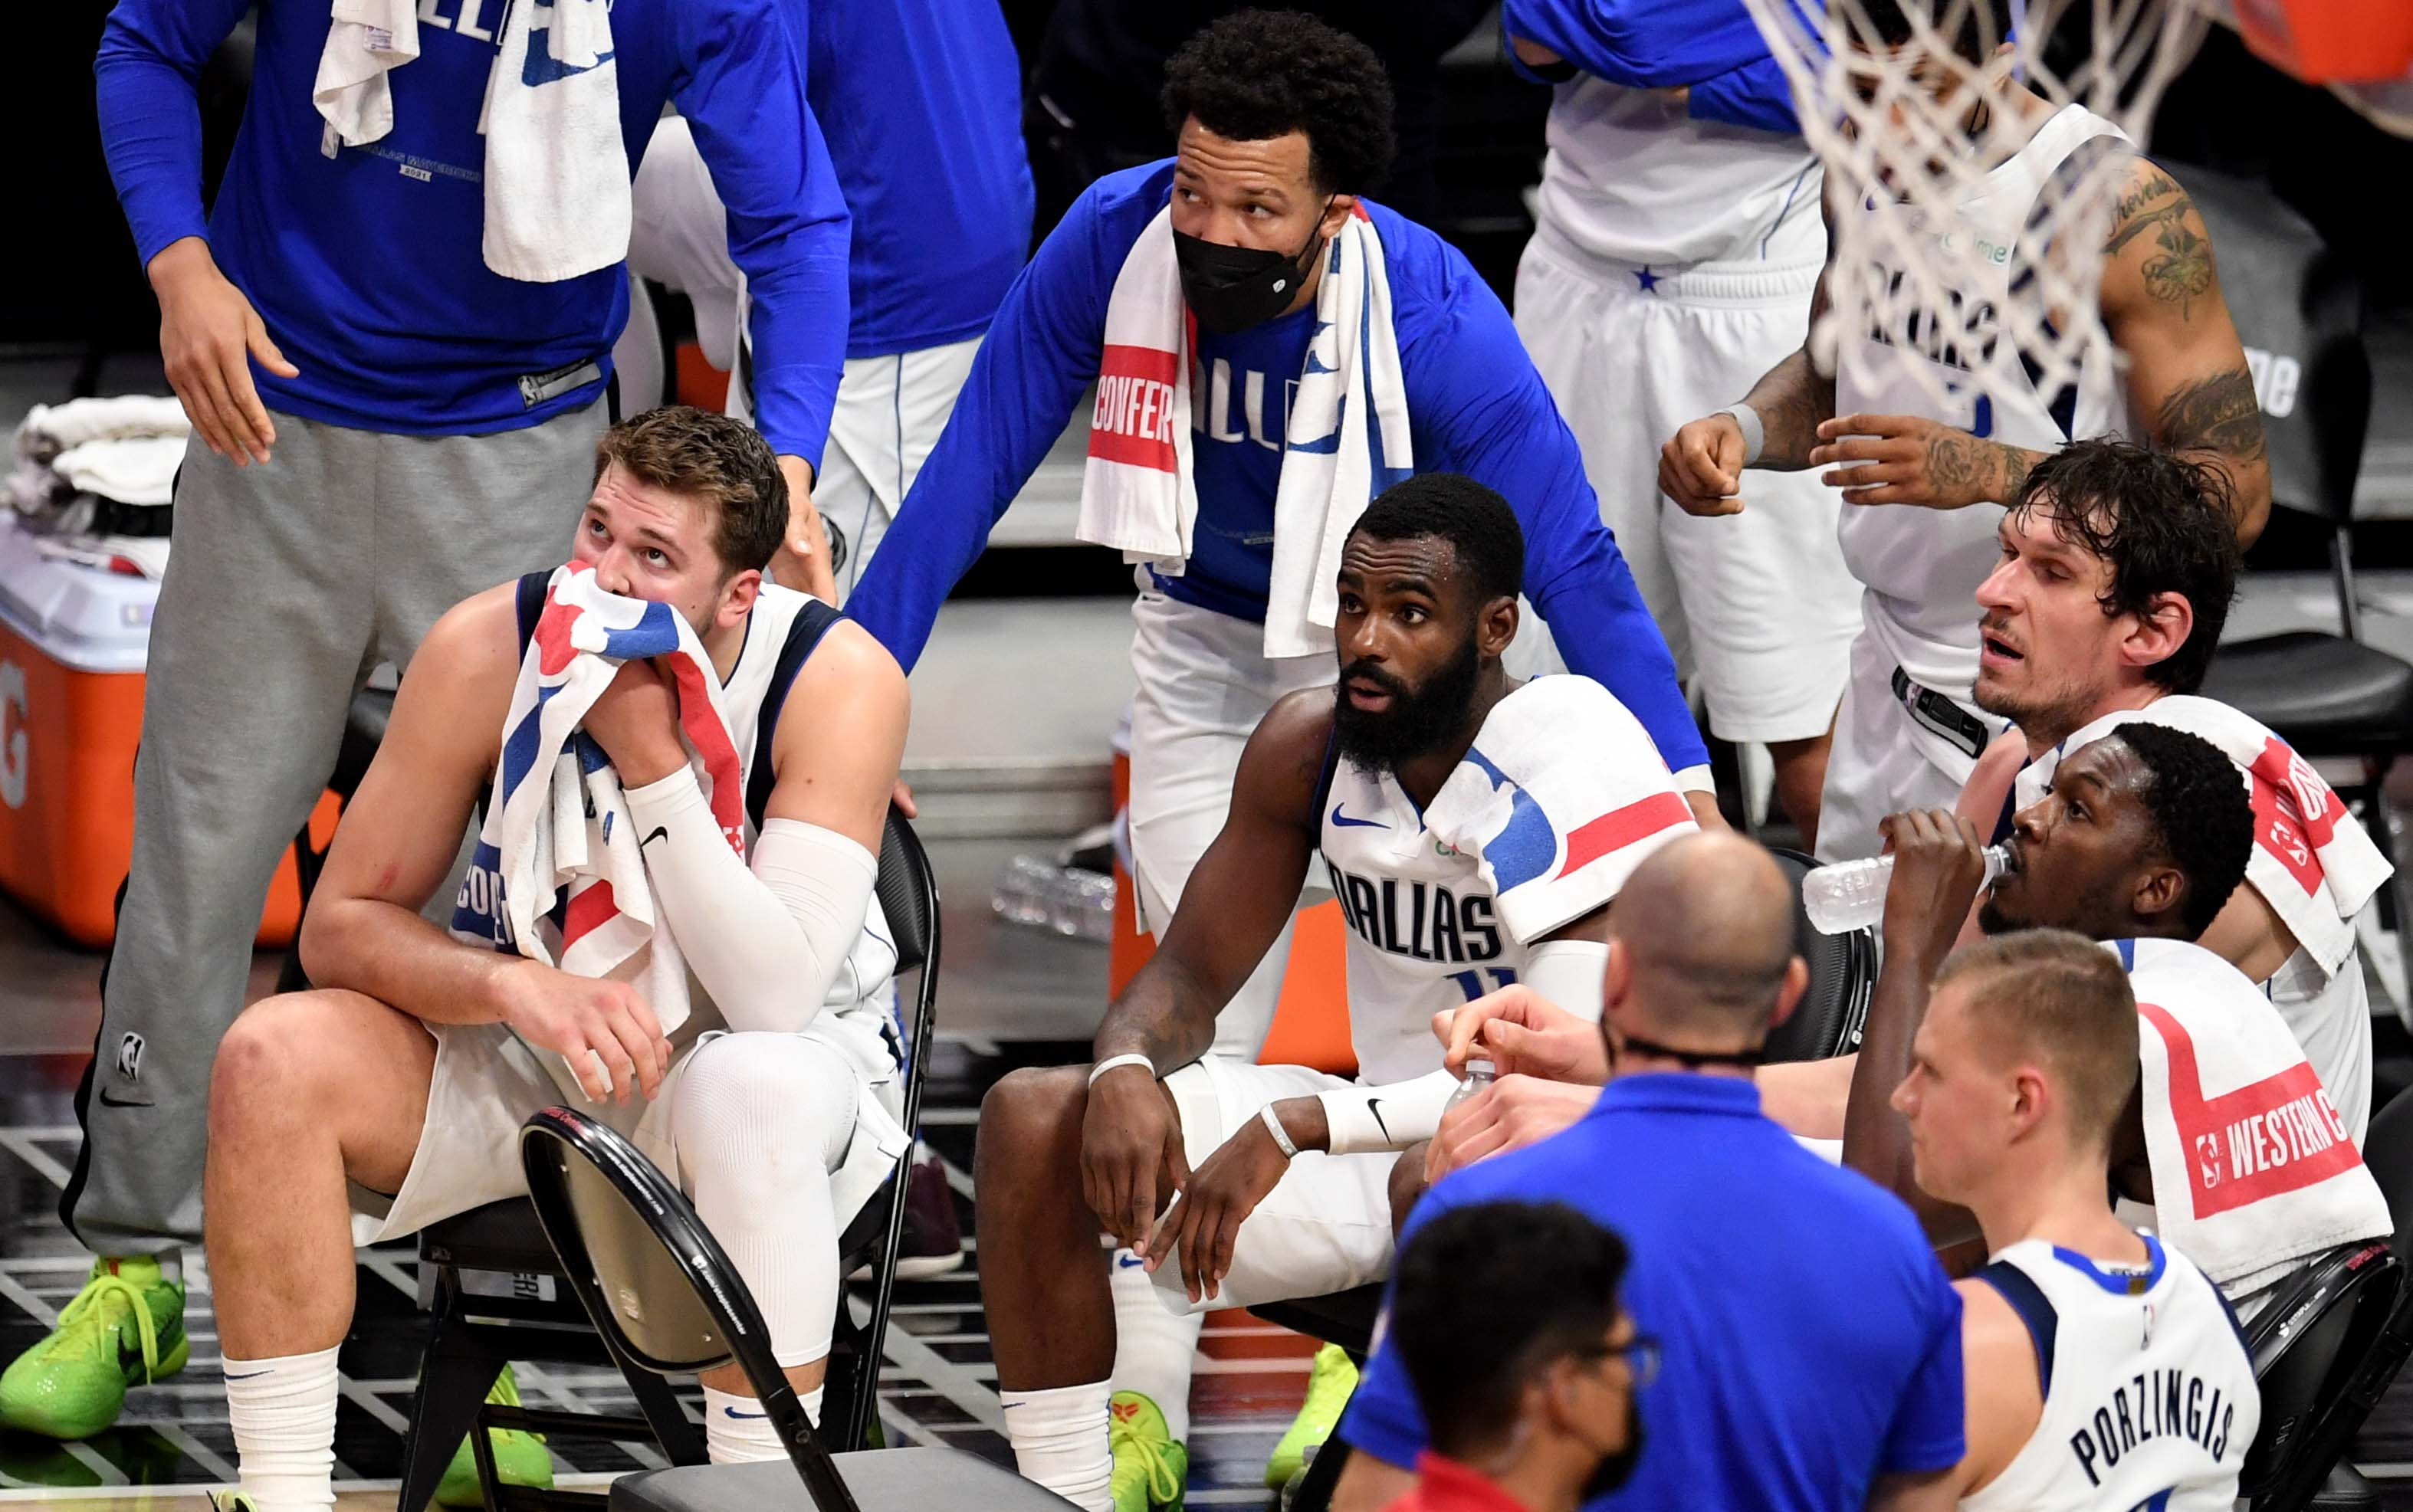 LA Clippers advance to the second round after defeating the Dallas Mavericks 126-111 during game seven of the Western Conference First Round NBA Playoff basketball game.